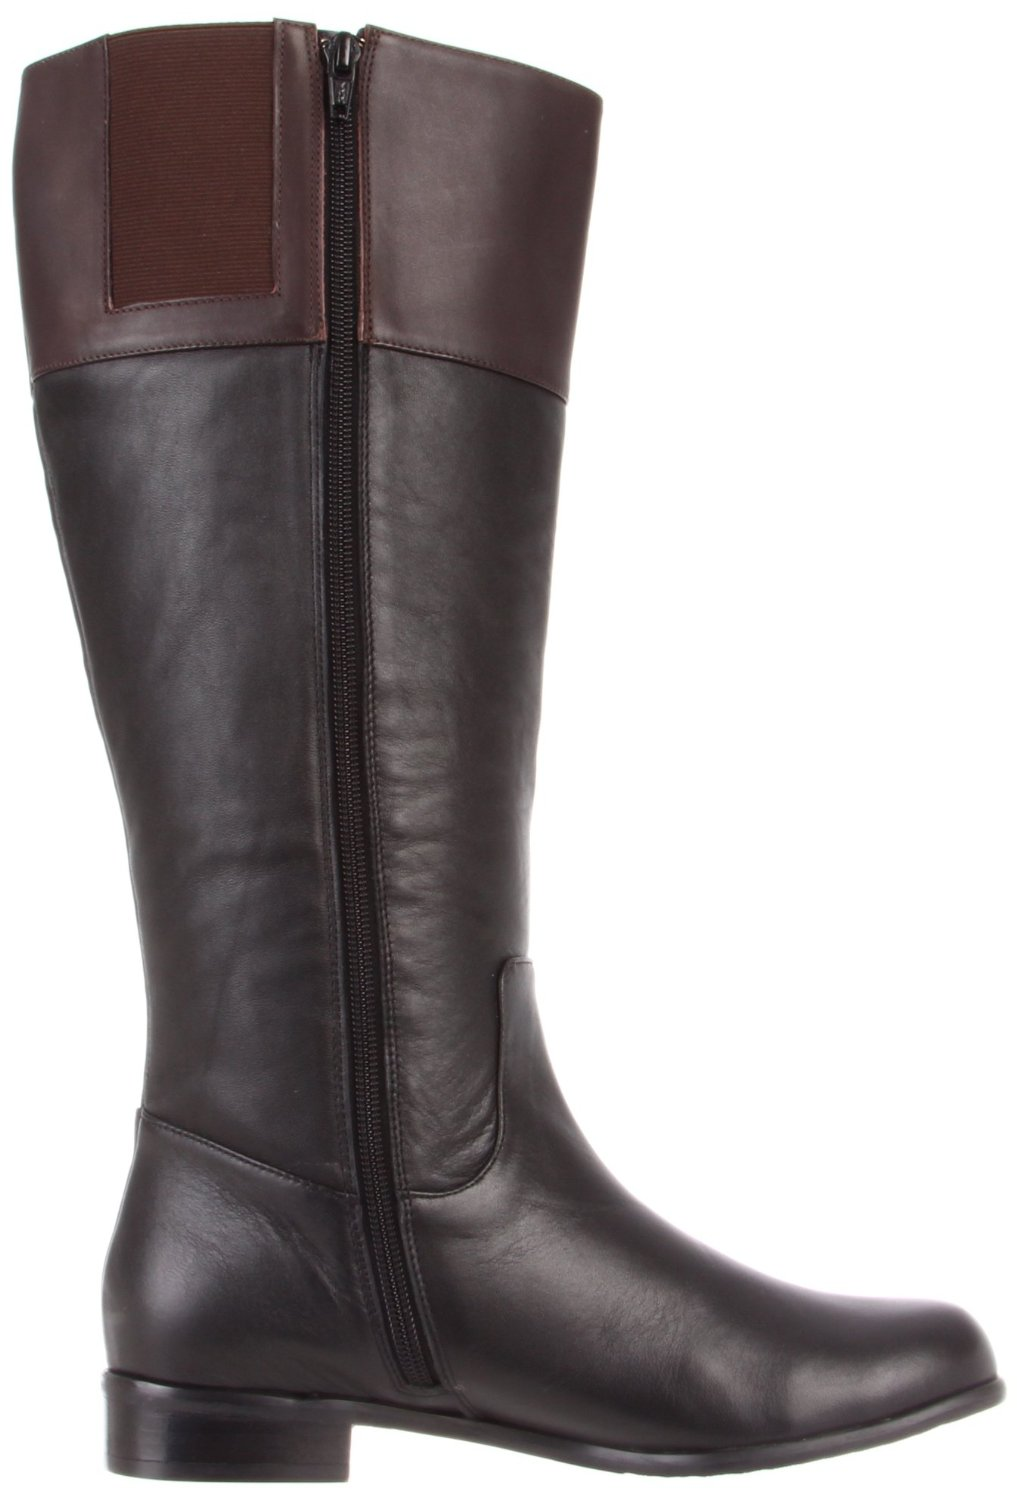 Ros Hommerson Chip boot Black/Brown Leather Wide calf [H-41898 ...